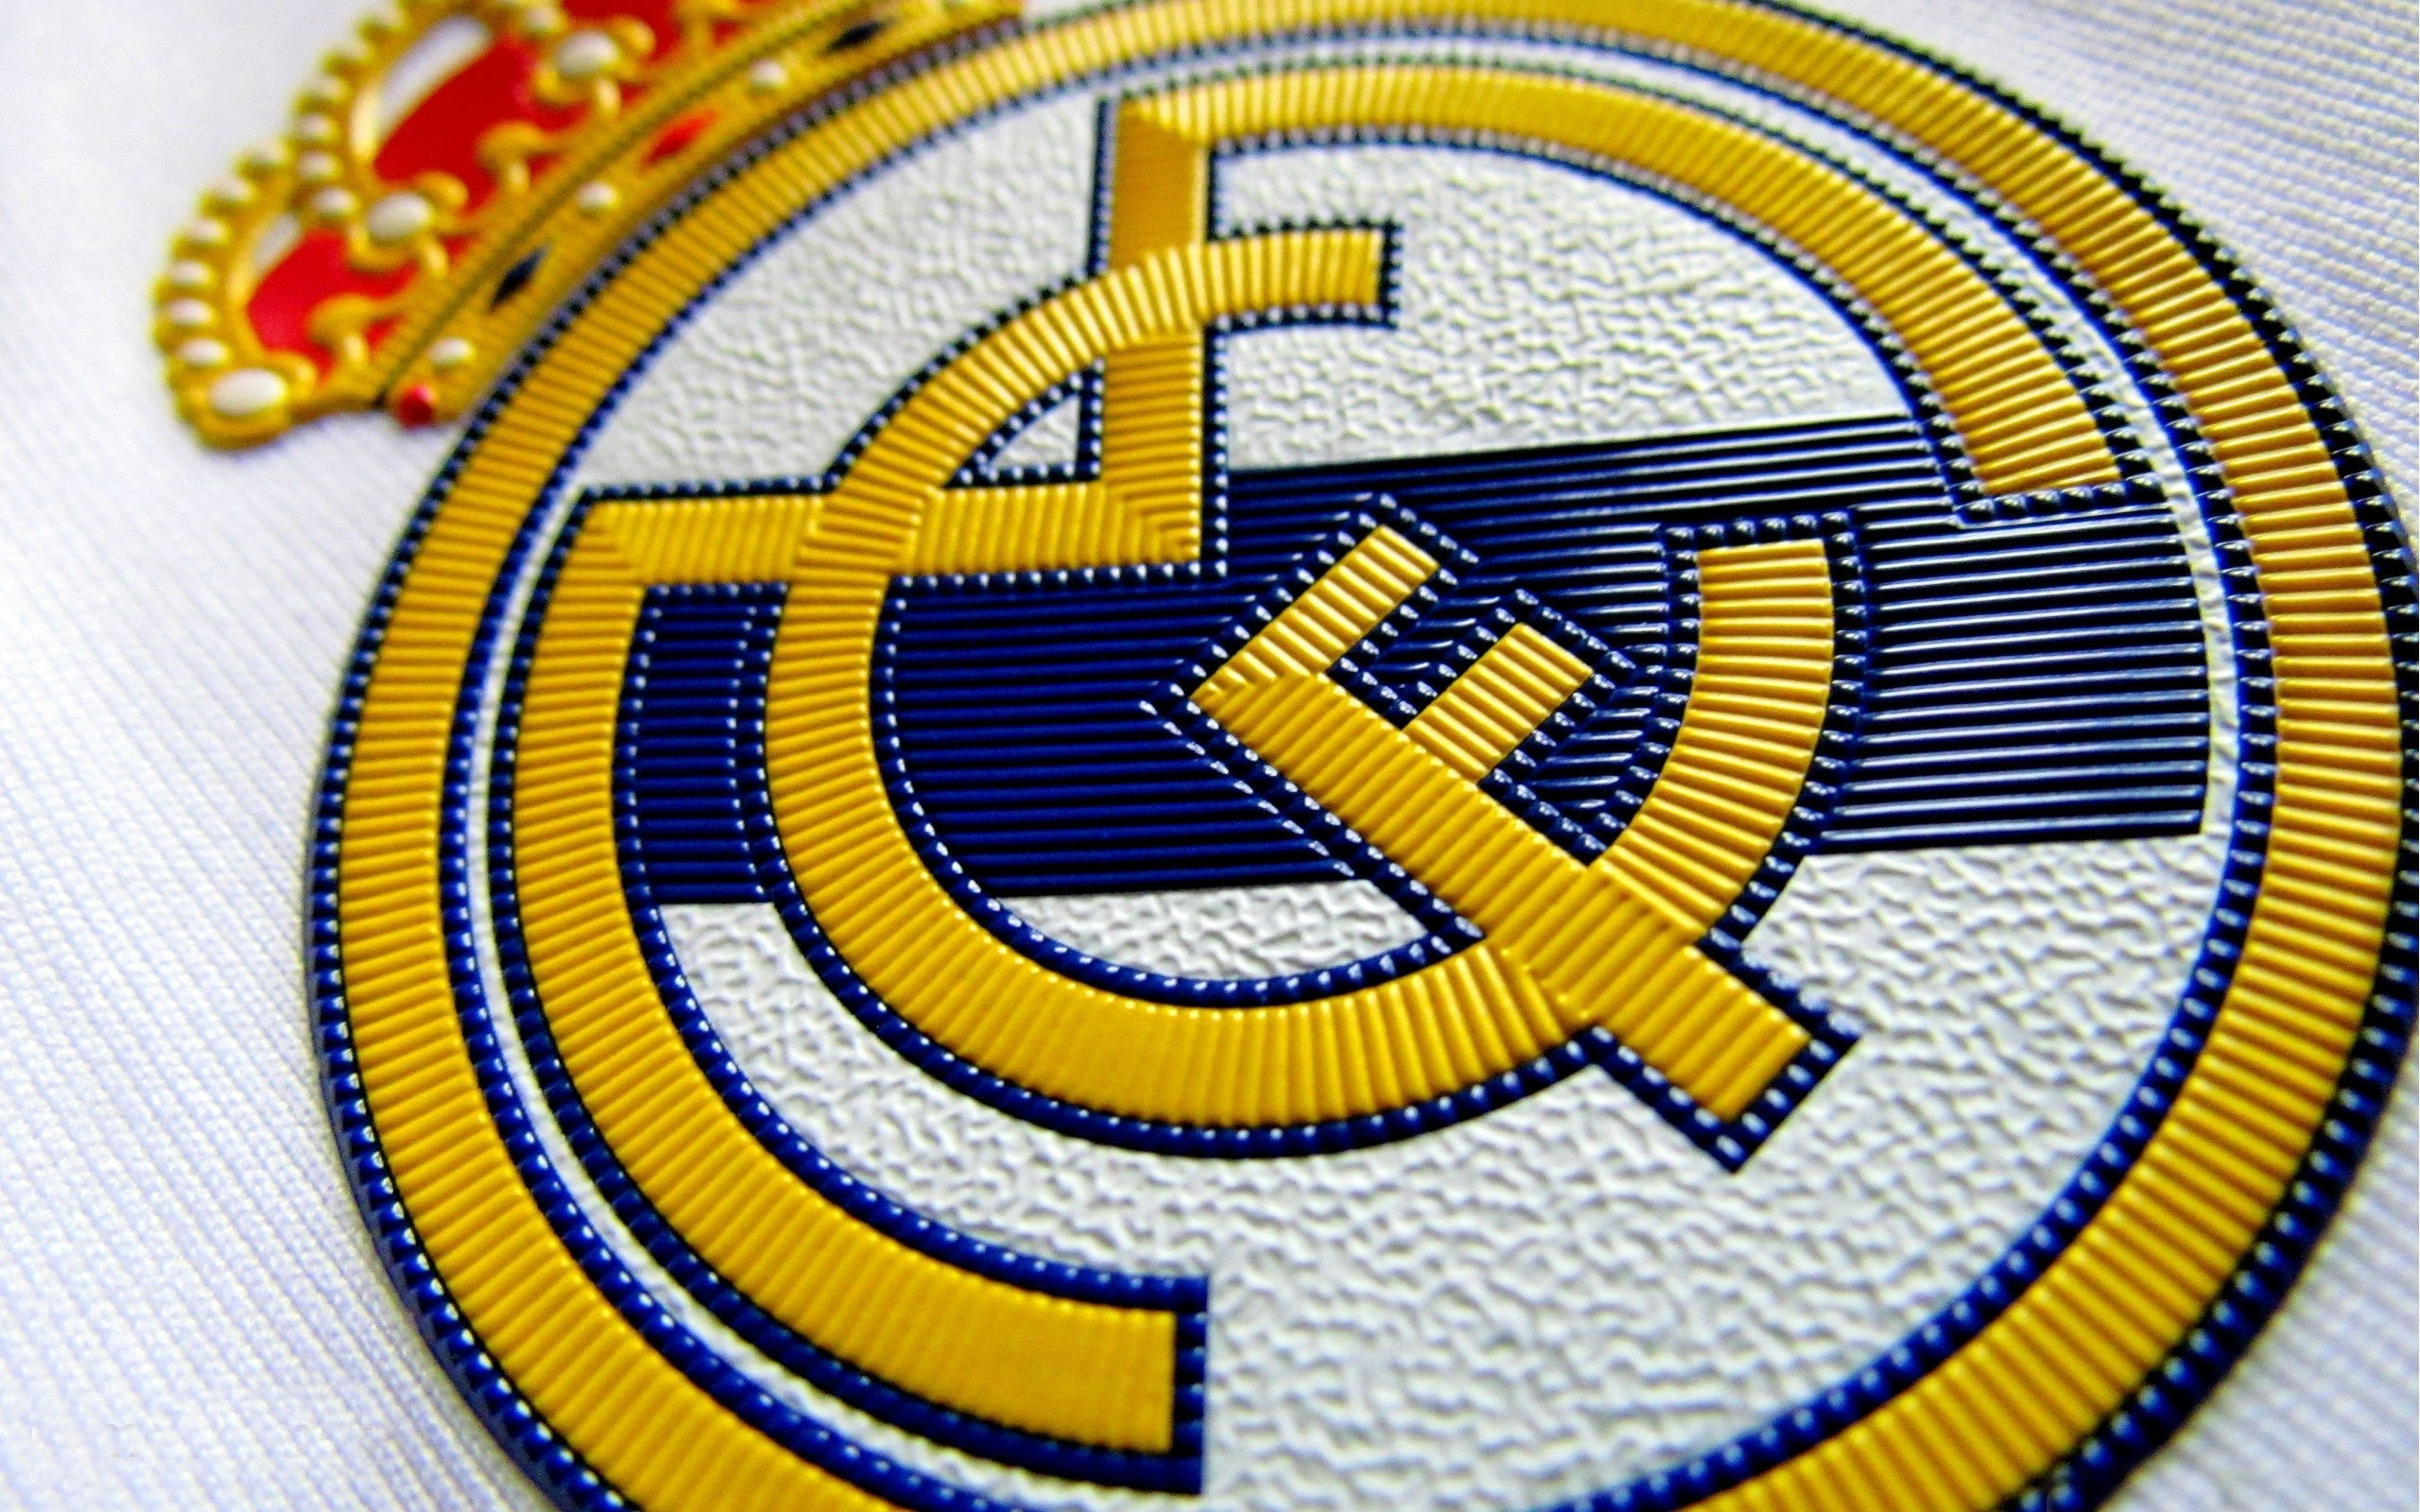 2560x1600 real-madrid-logo-sport-hd-wallpaper--4606